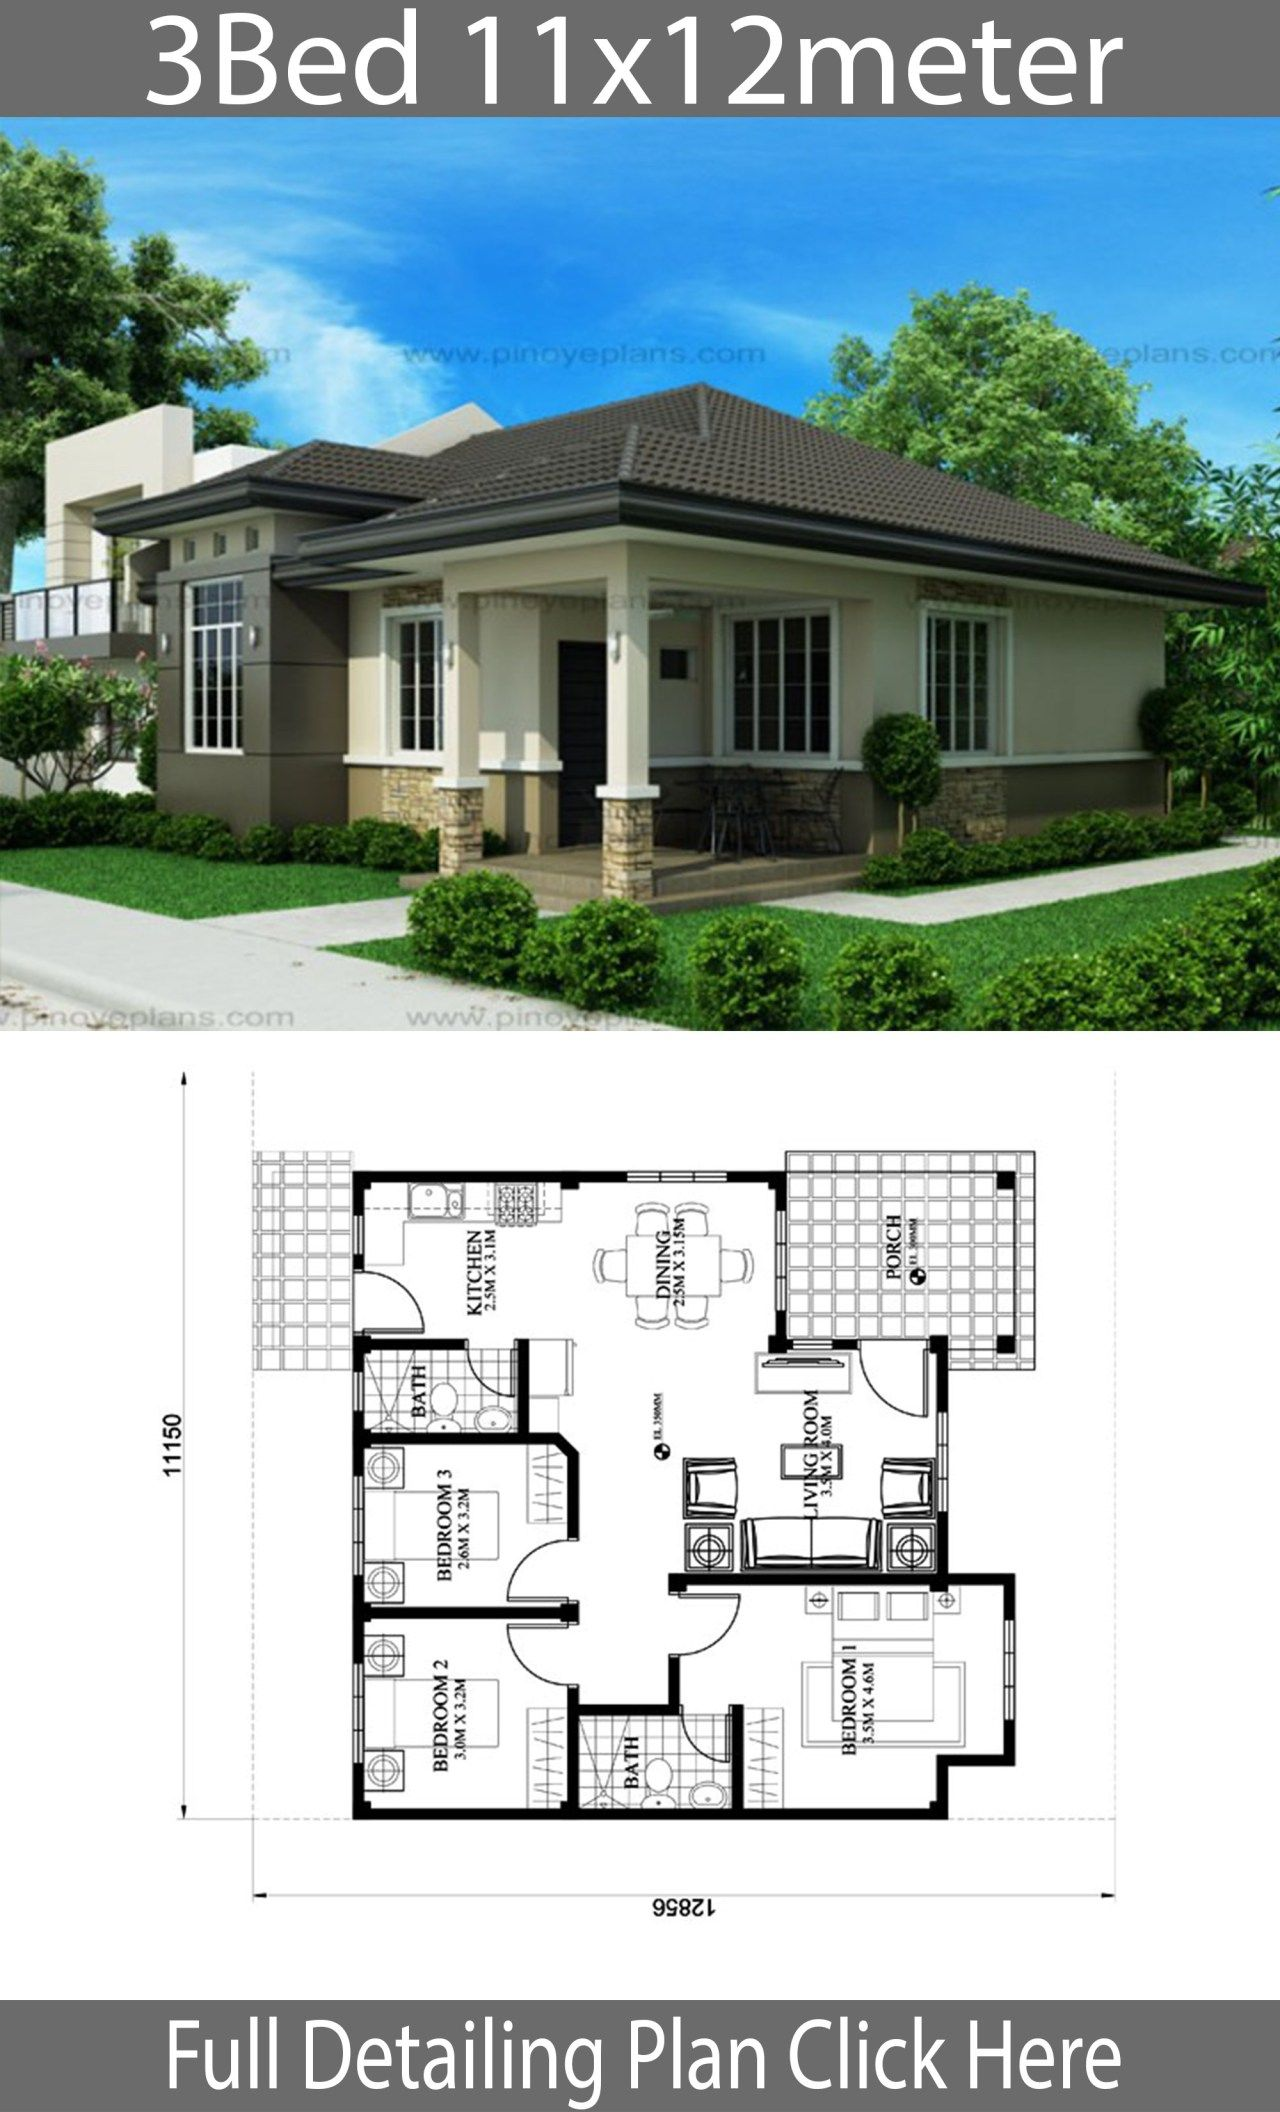 House Design 11x12m With 3 Bedrooms Architect Design House